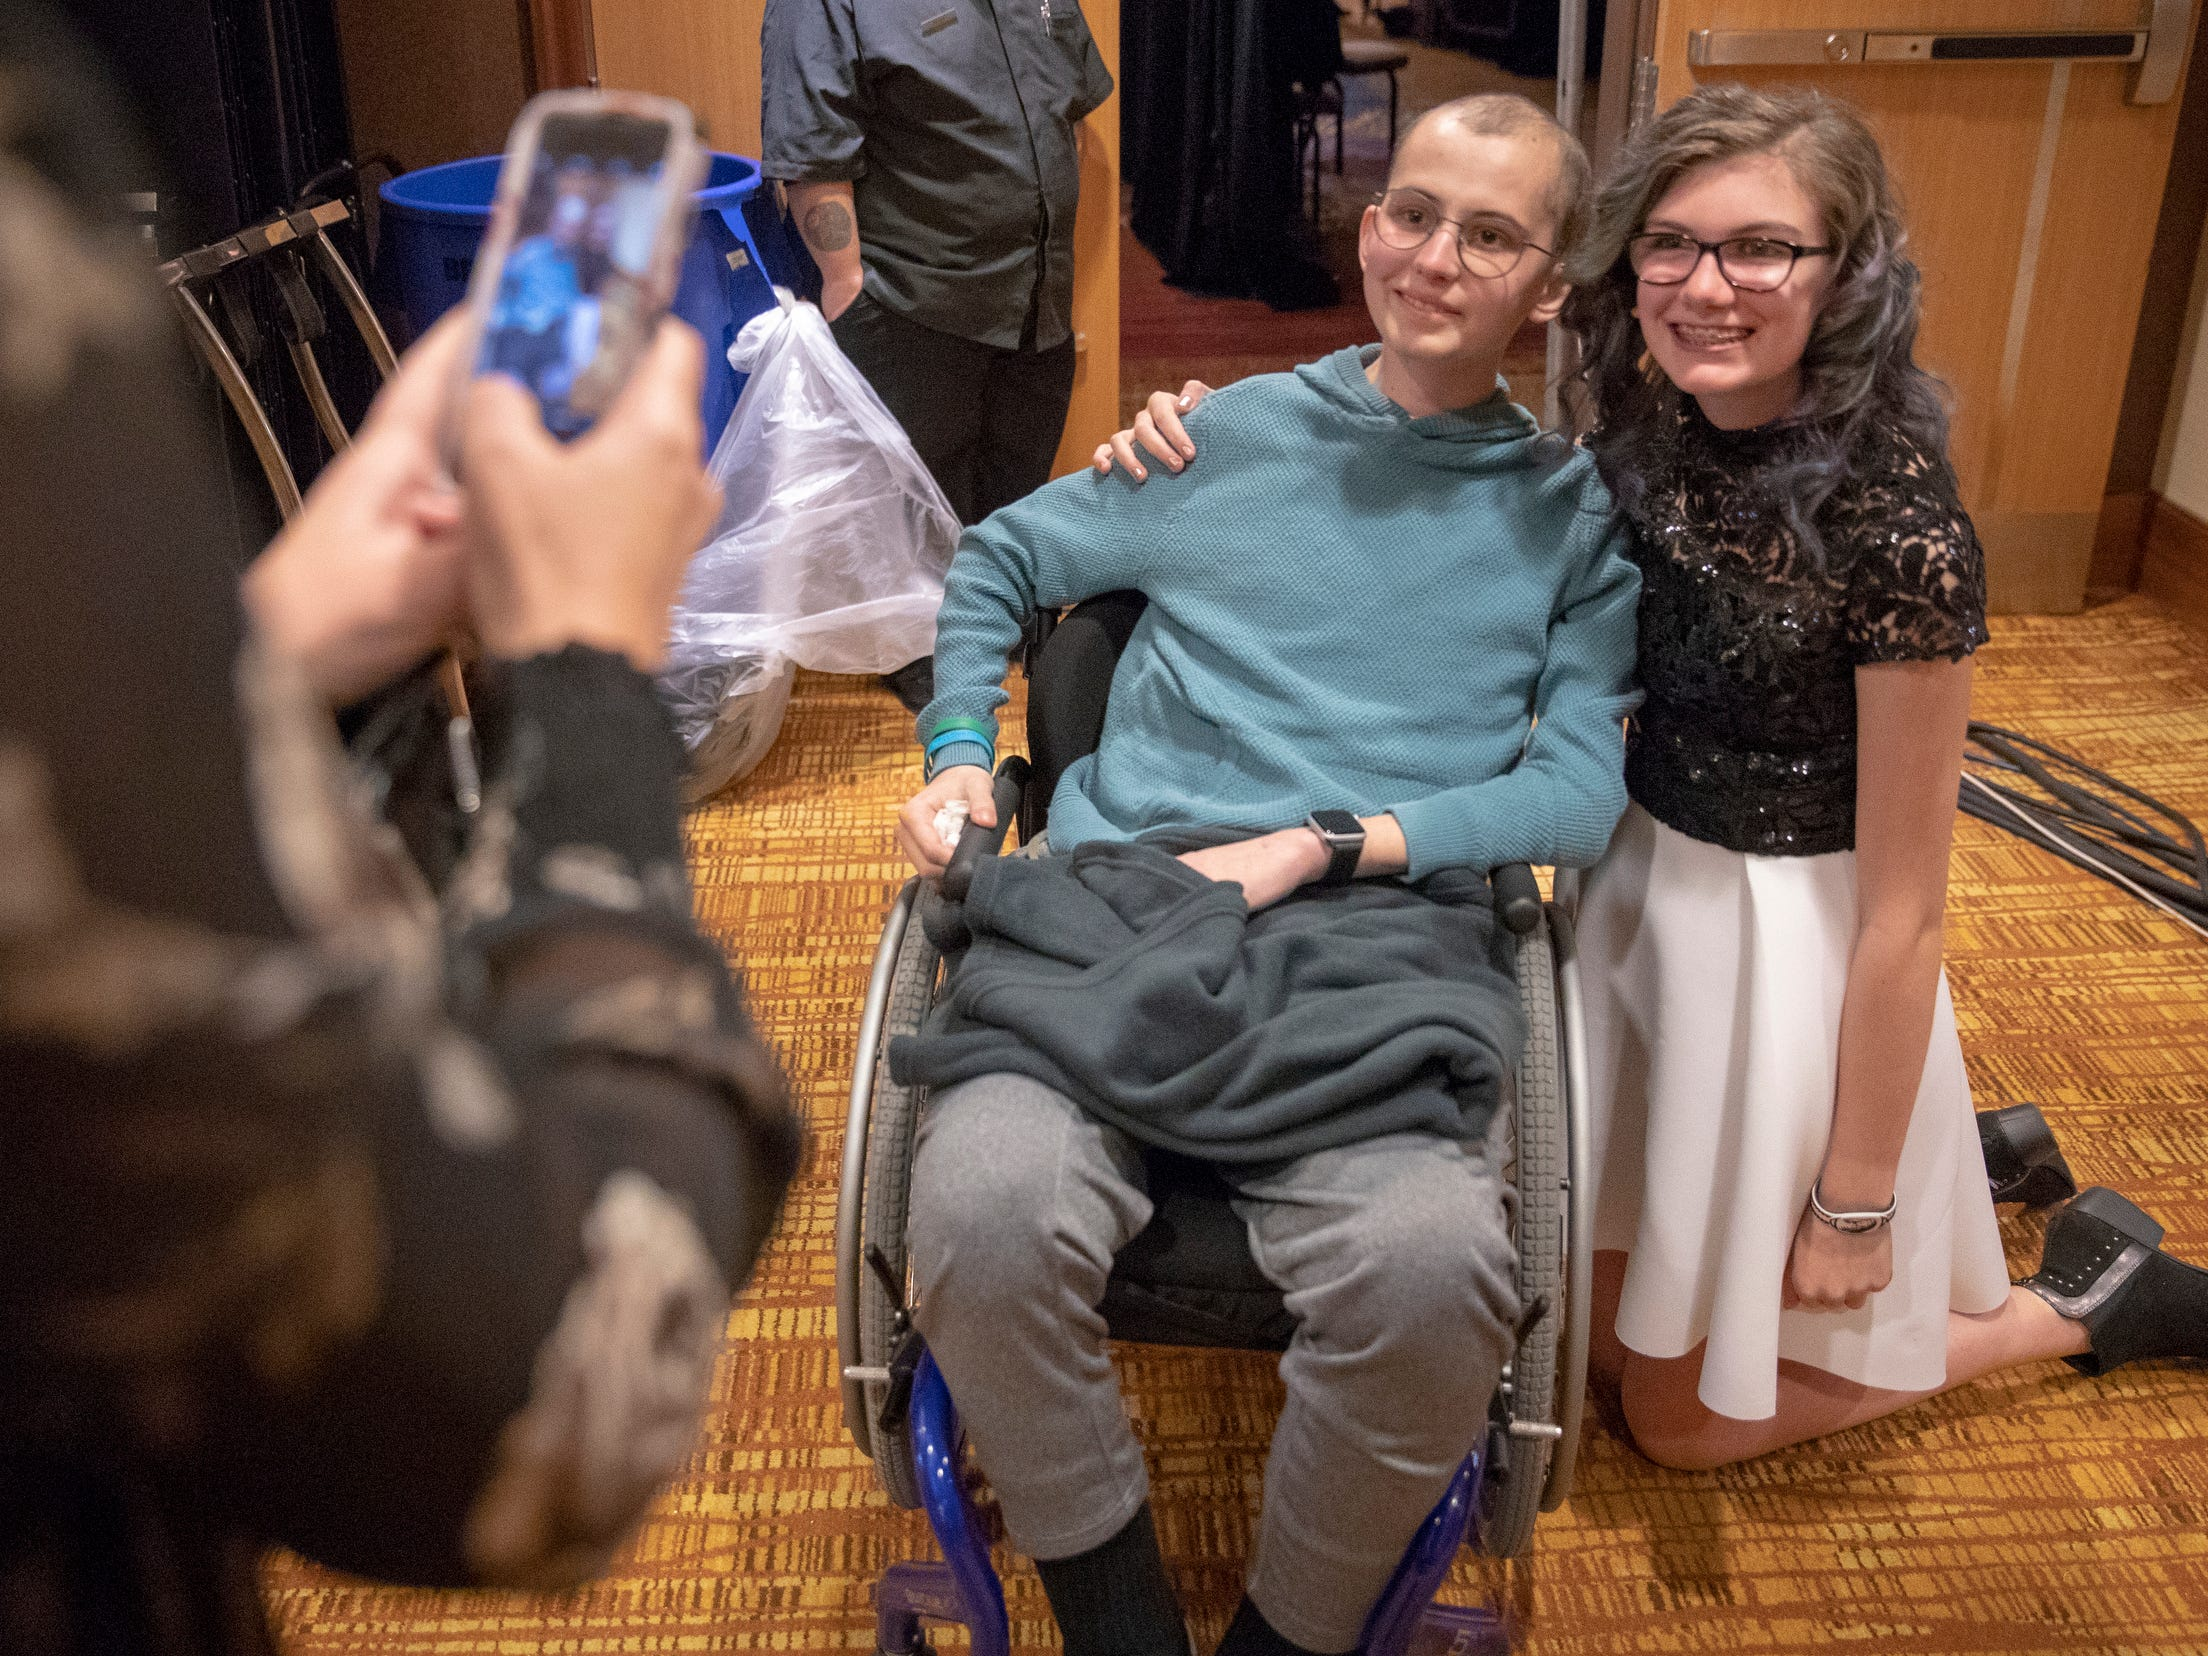 Olivia Pierce, 12, Hobart, who is dealing with the effects of bilateral retinoblastoma, poses with Tyler Trent as her mother Shannon Pierce snaps a photo at a fundraiser luncheon for Riley Children's Foundation's Be The Hope Now campaign, Indianapolis, Wednesday, Nov. 28, 2018. Trent, who has the rare bone cancer osteosarcoma, is in hospice care, and was given the Sagamore of the Wabash award, given to distinguished Hoosiers.